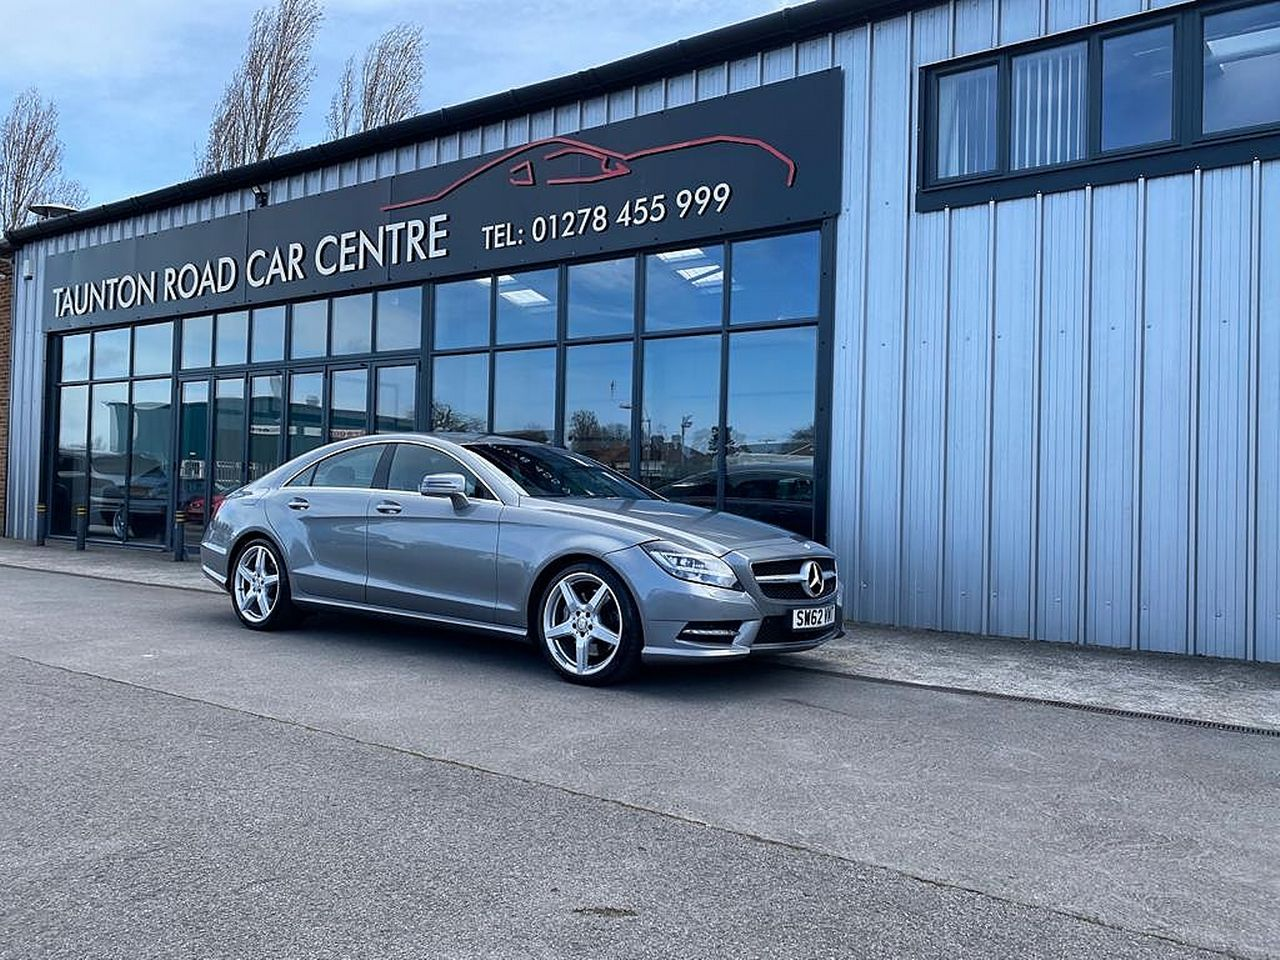 2012 MERCEDES CLS-class CLS 350 CDI BlueEFFICIENCY Sport Auto - Picture 1 of 10